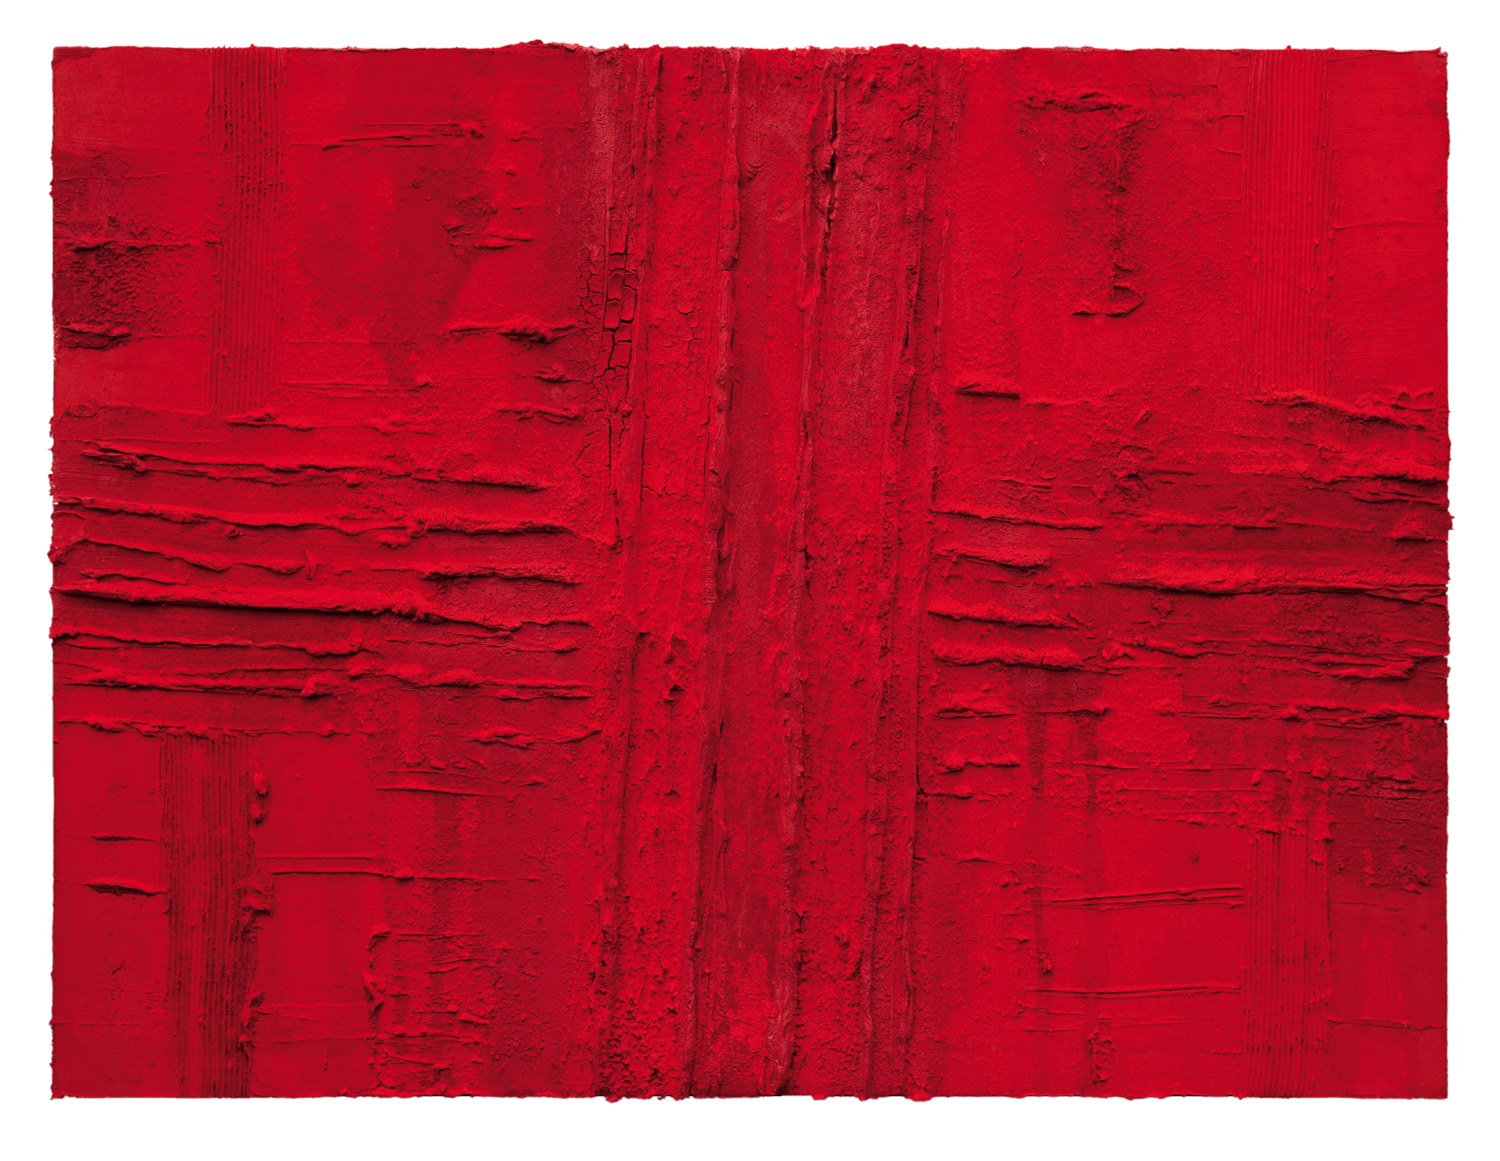 Marcello Lo Giudice, Red vulcano, 2016